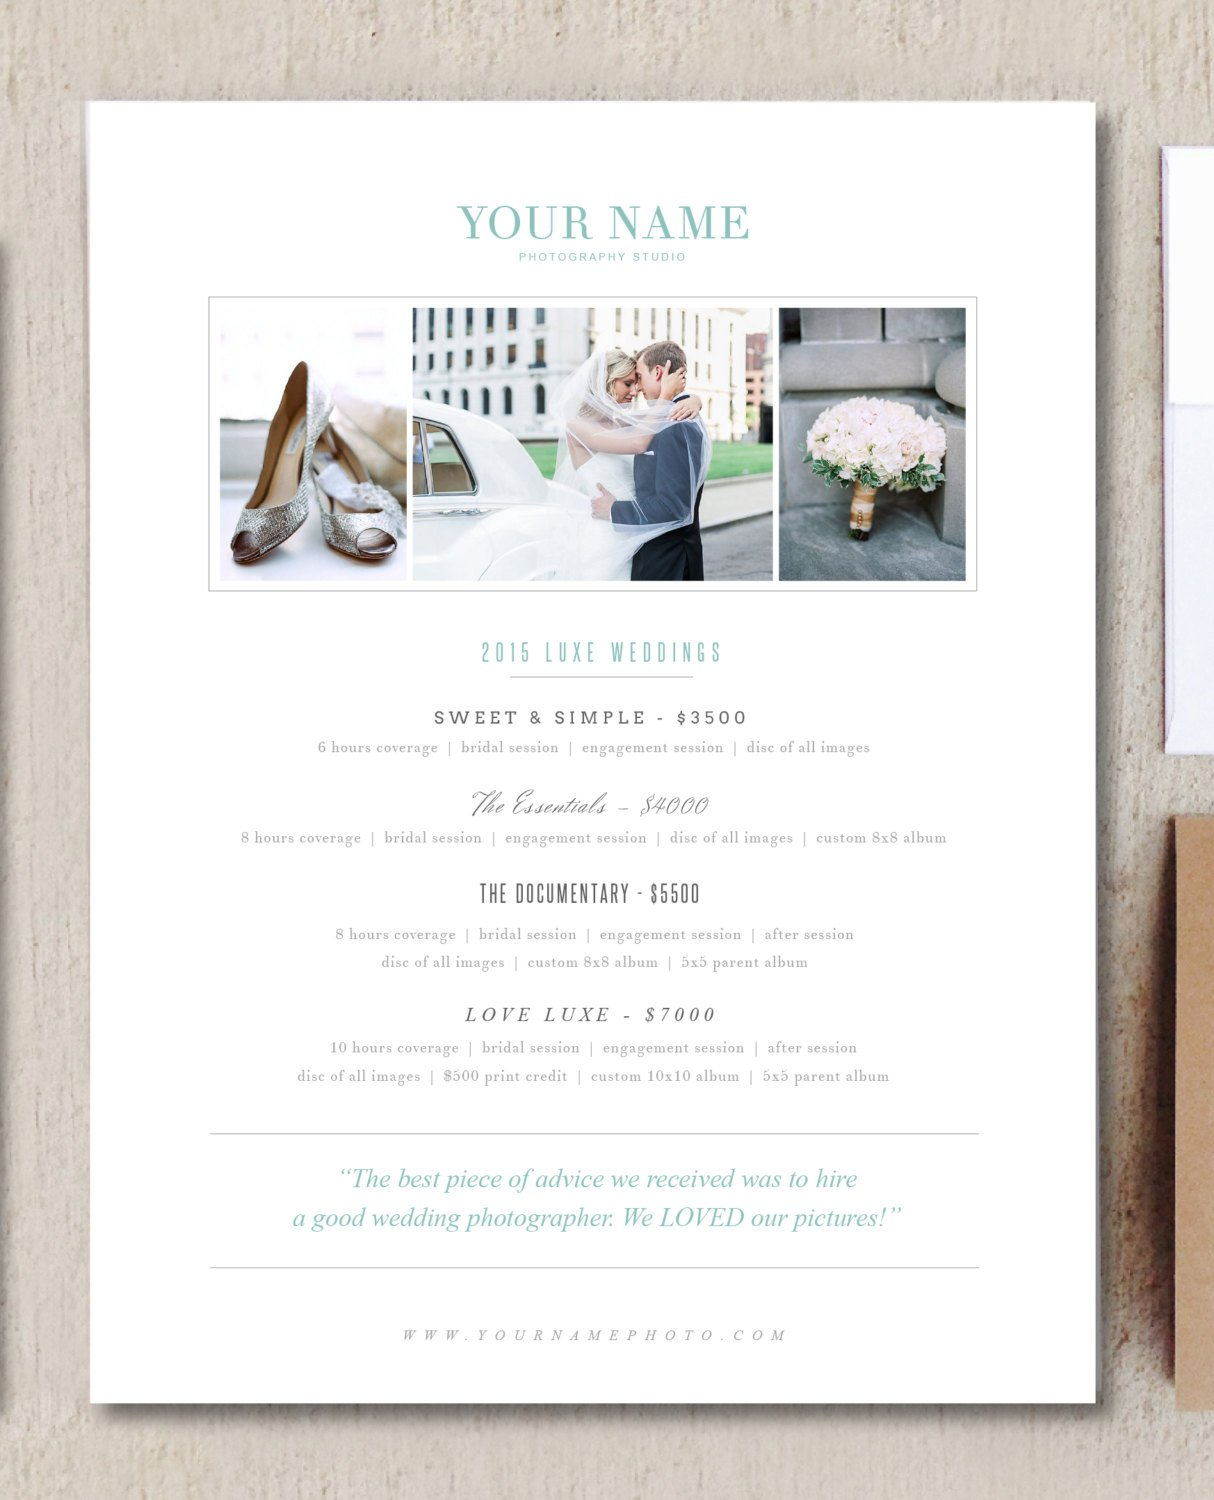 Wedding Photographer Pricing Guide Brochure Templates Creative Market